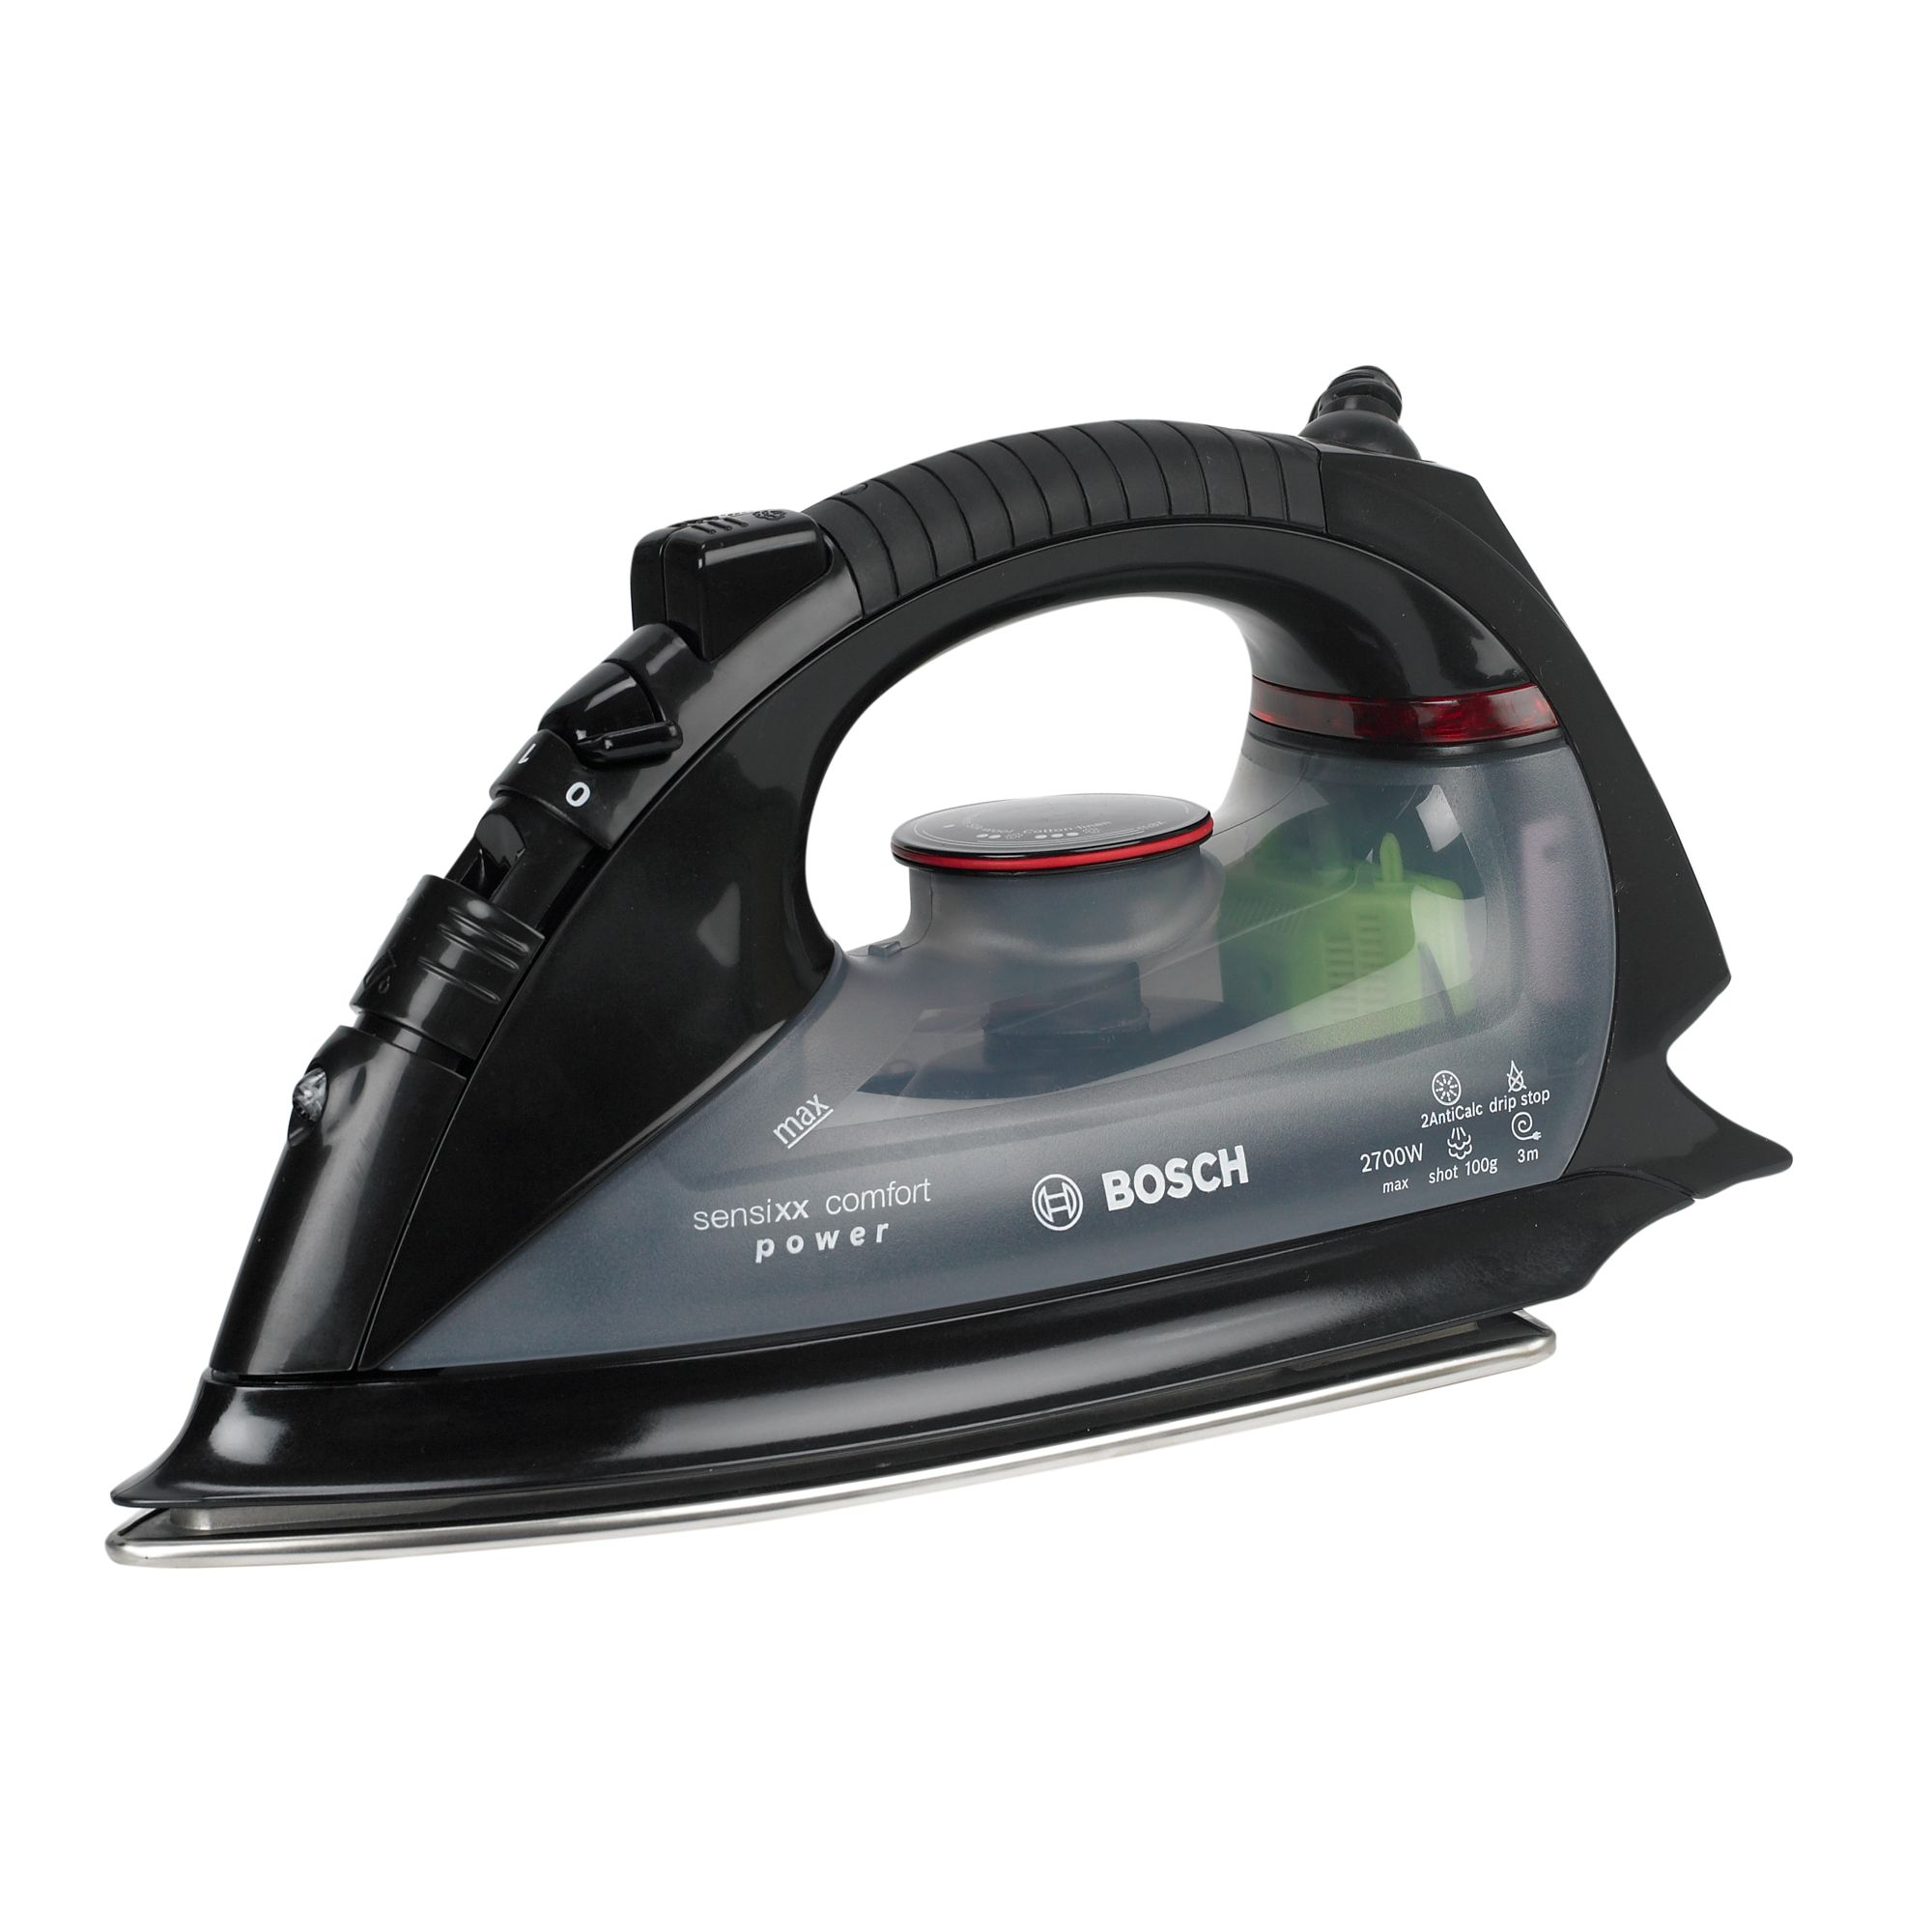 TDA8337 Sensixx steam iron